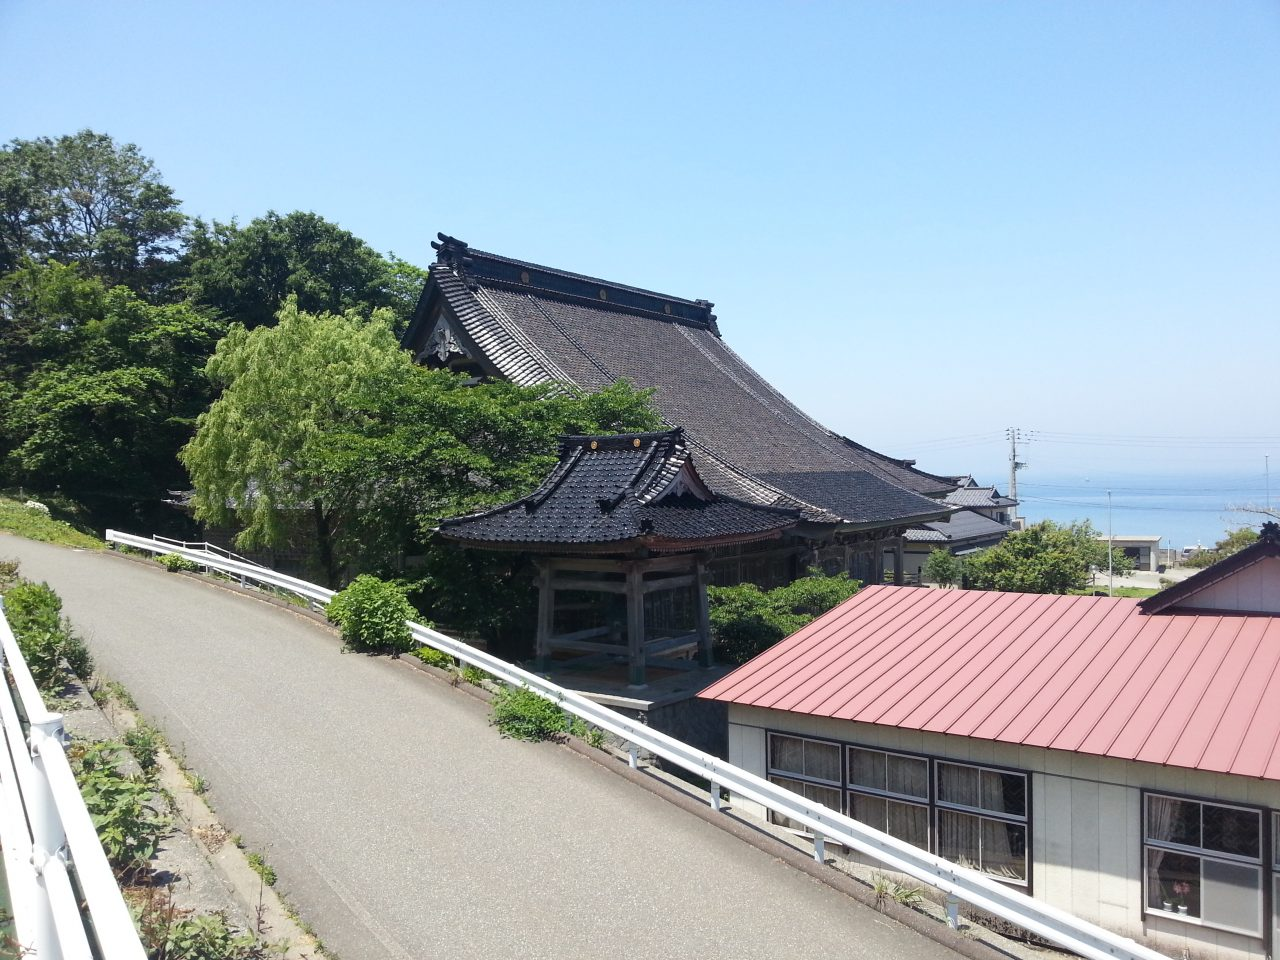 Saishoji Temple from the cycling road